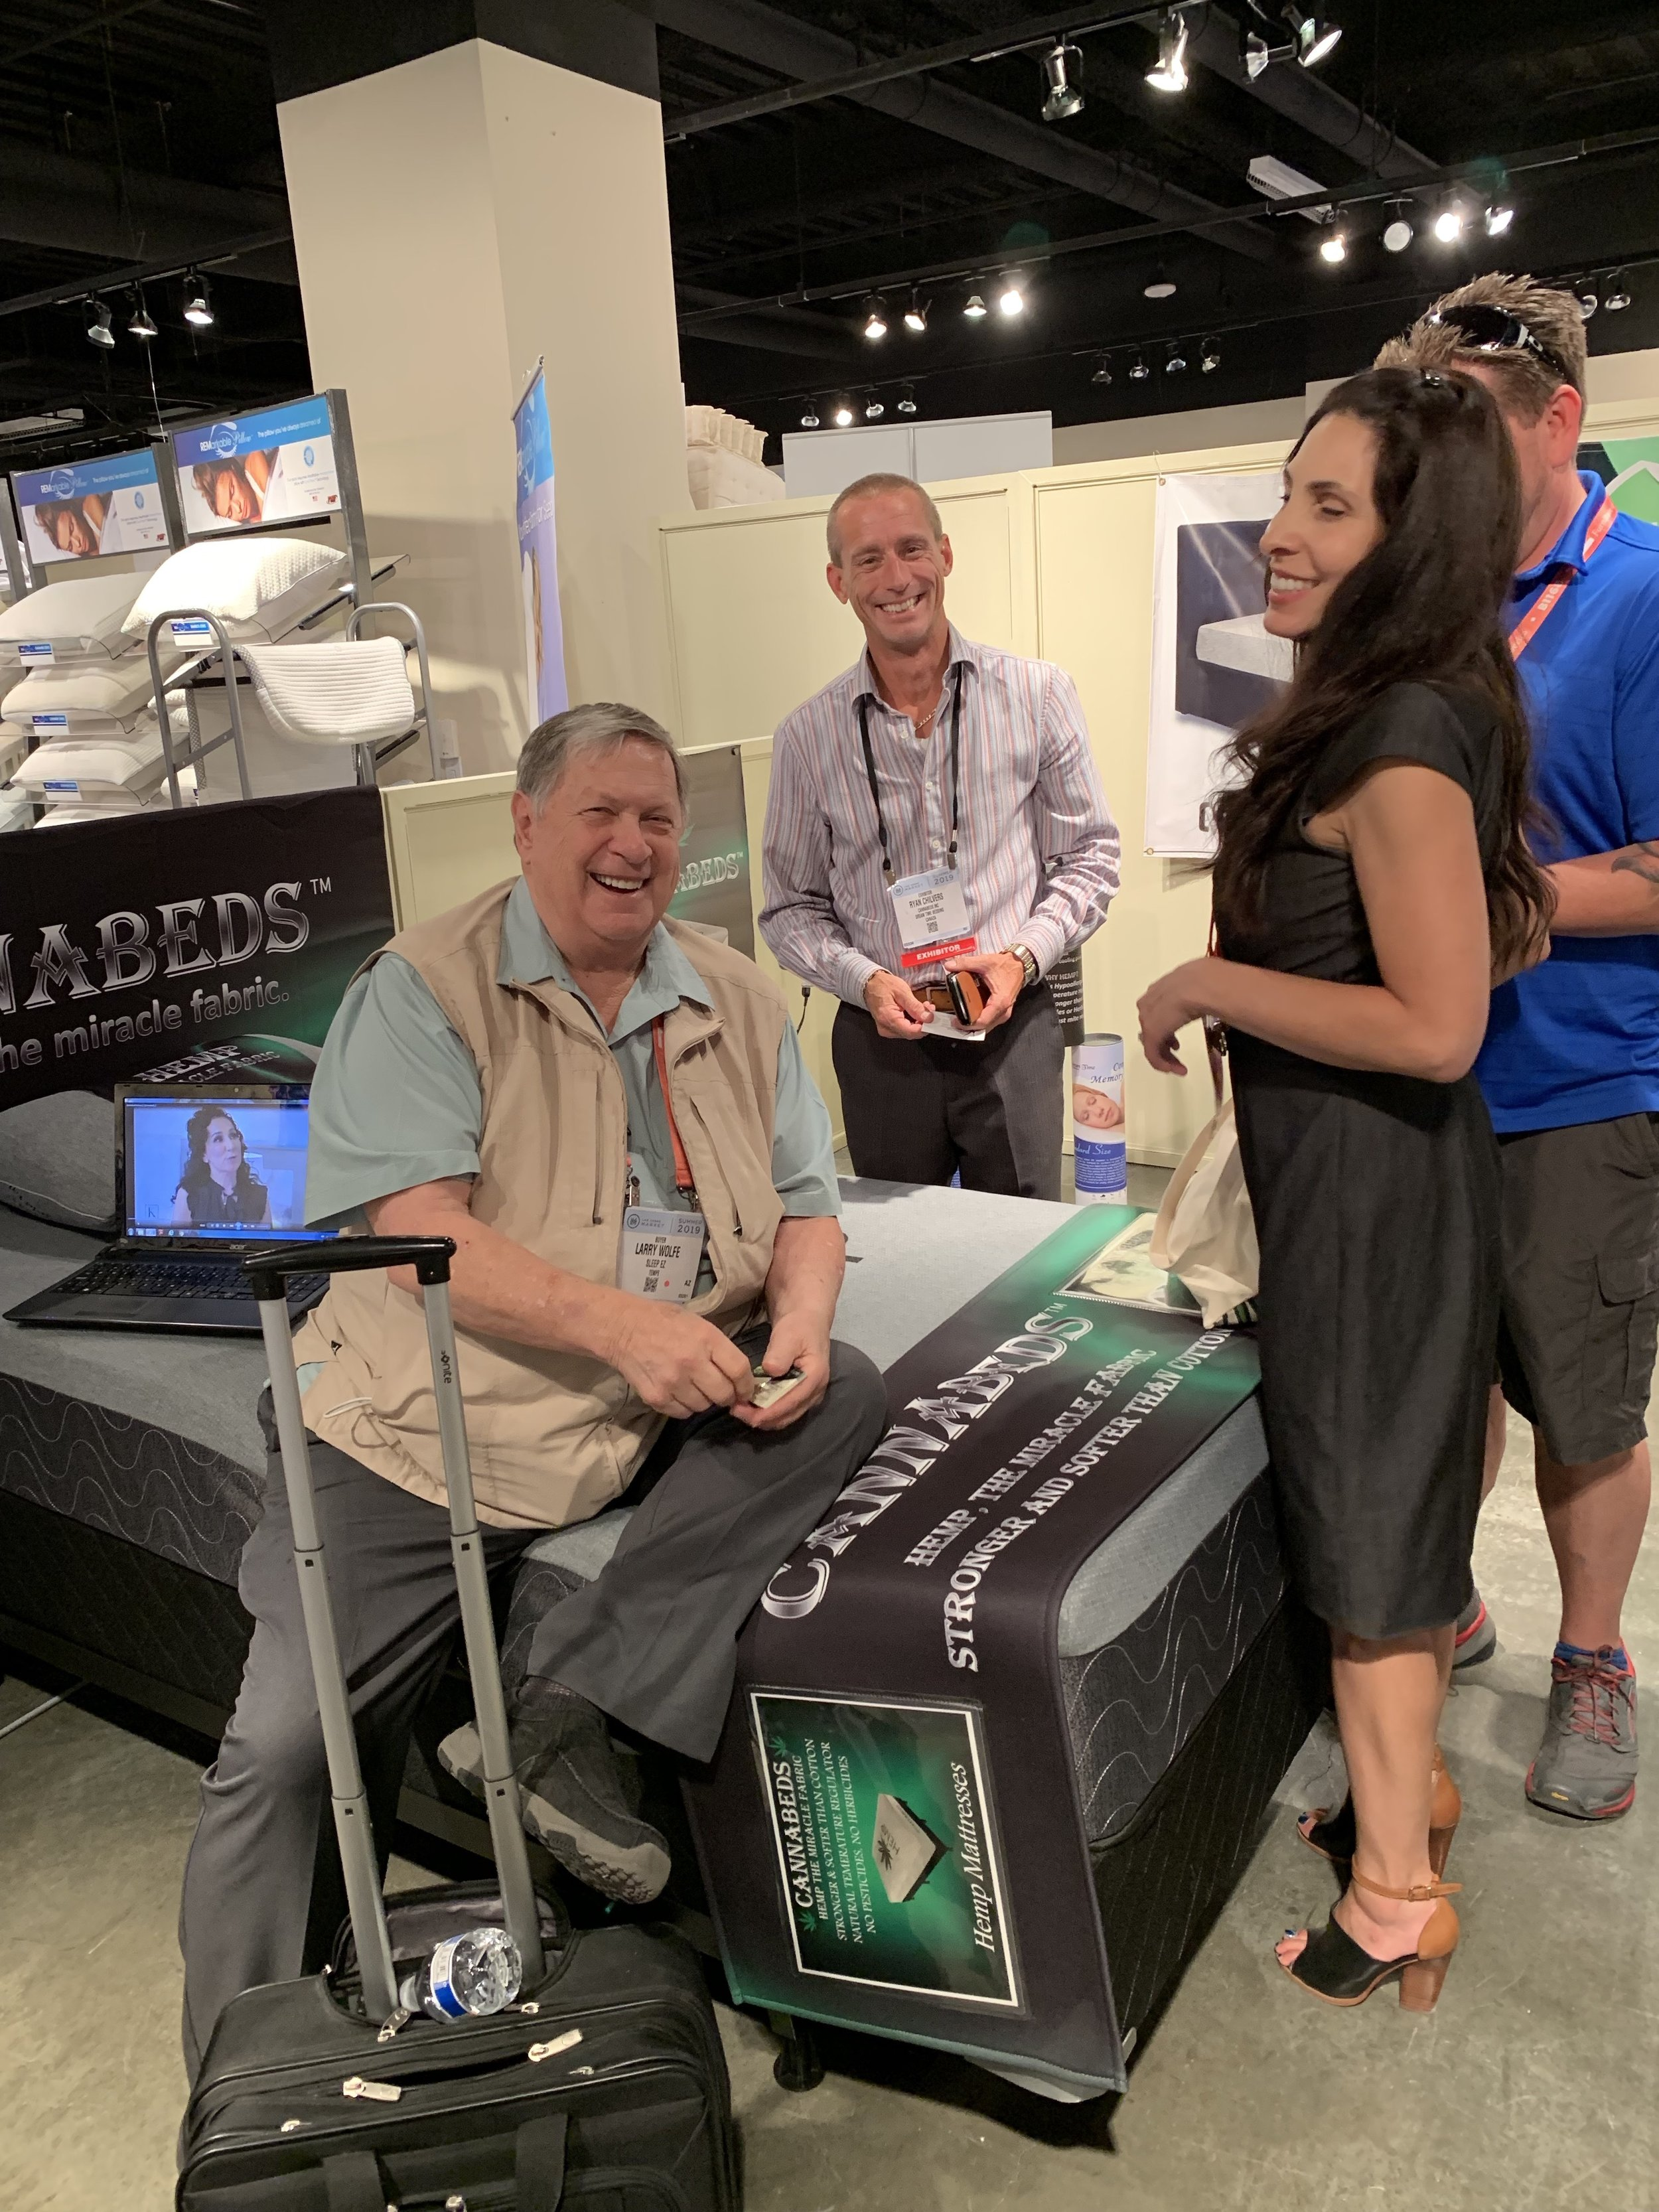 Ryan Chilvers - Cannabeds is all smiles with Larry Wolfe and his team